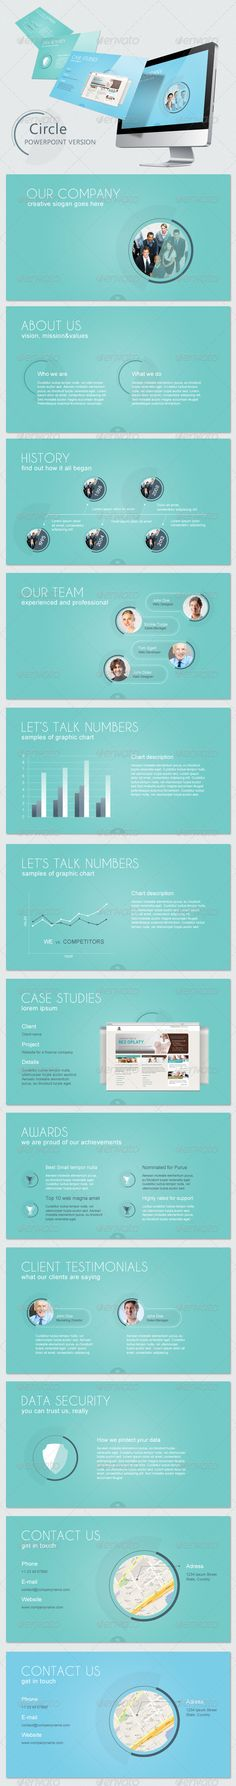 Buy Circle Keynote Template by on GraphicRiver. Circle Powerpoint Template All shapes were made directly in Keynote so they are easy to customize and fully editable. Professional Powerpoint Templates, Creative Powerpoint, Responsive Template, Keynote Template, Presentation Layout, Presentation Templates, Presentation Backgrounds, Business Intelligence, Web Design